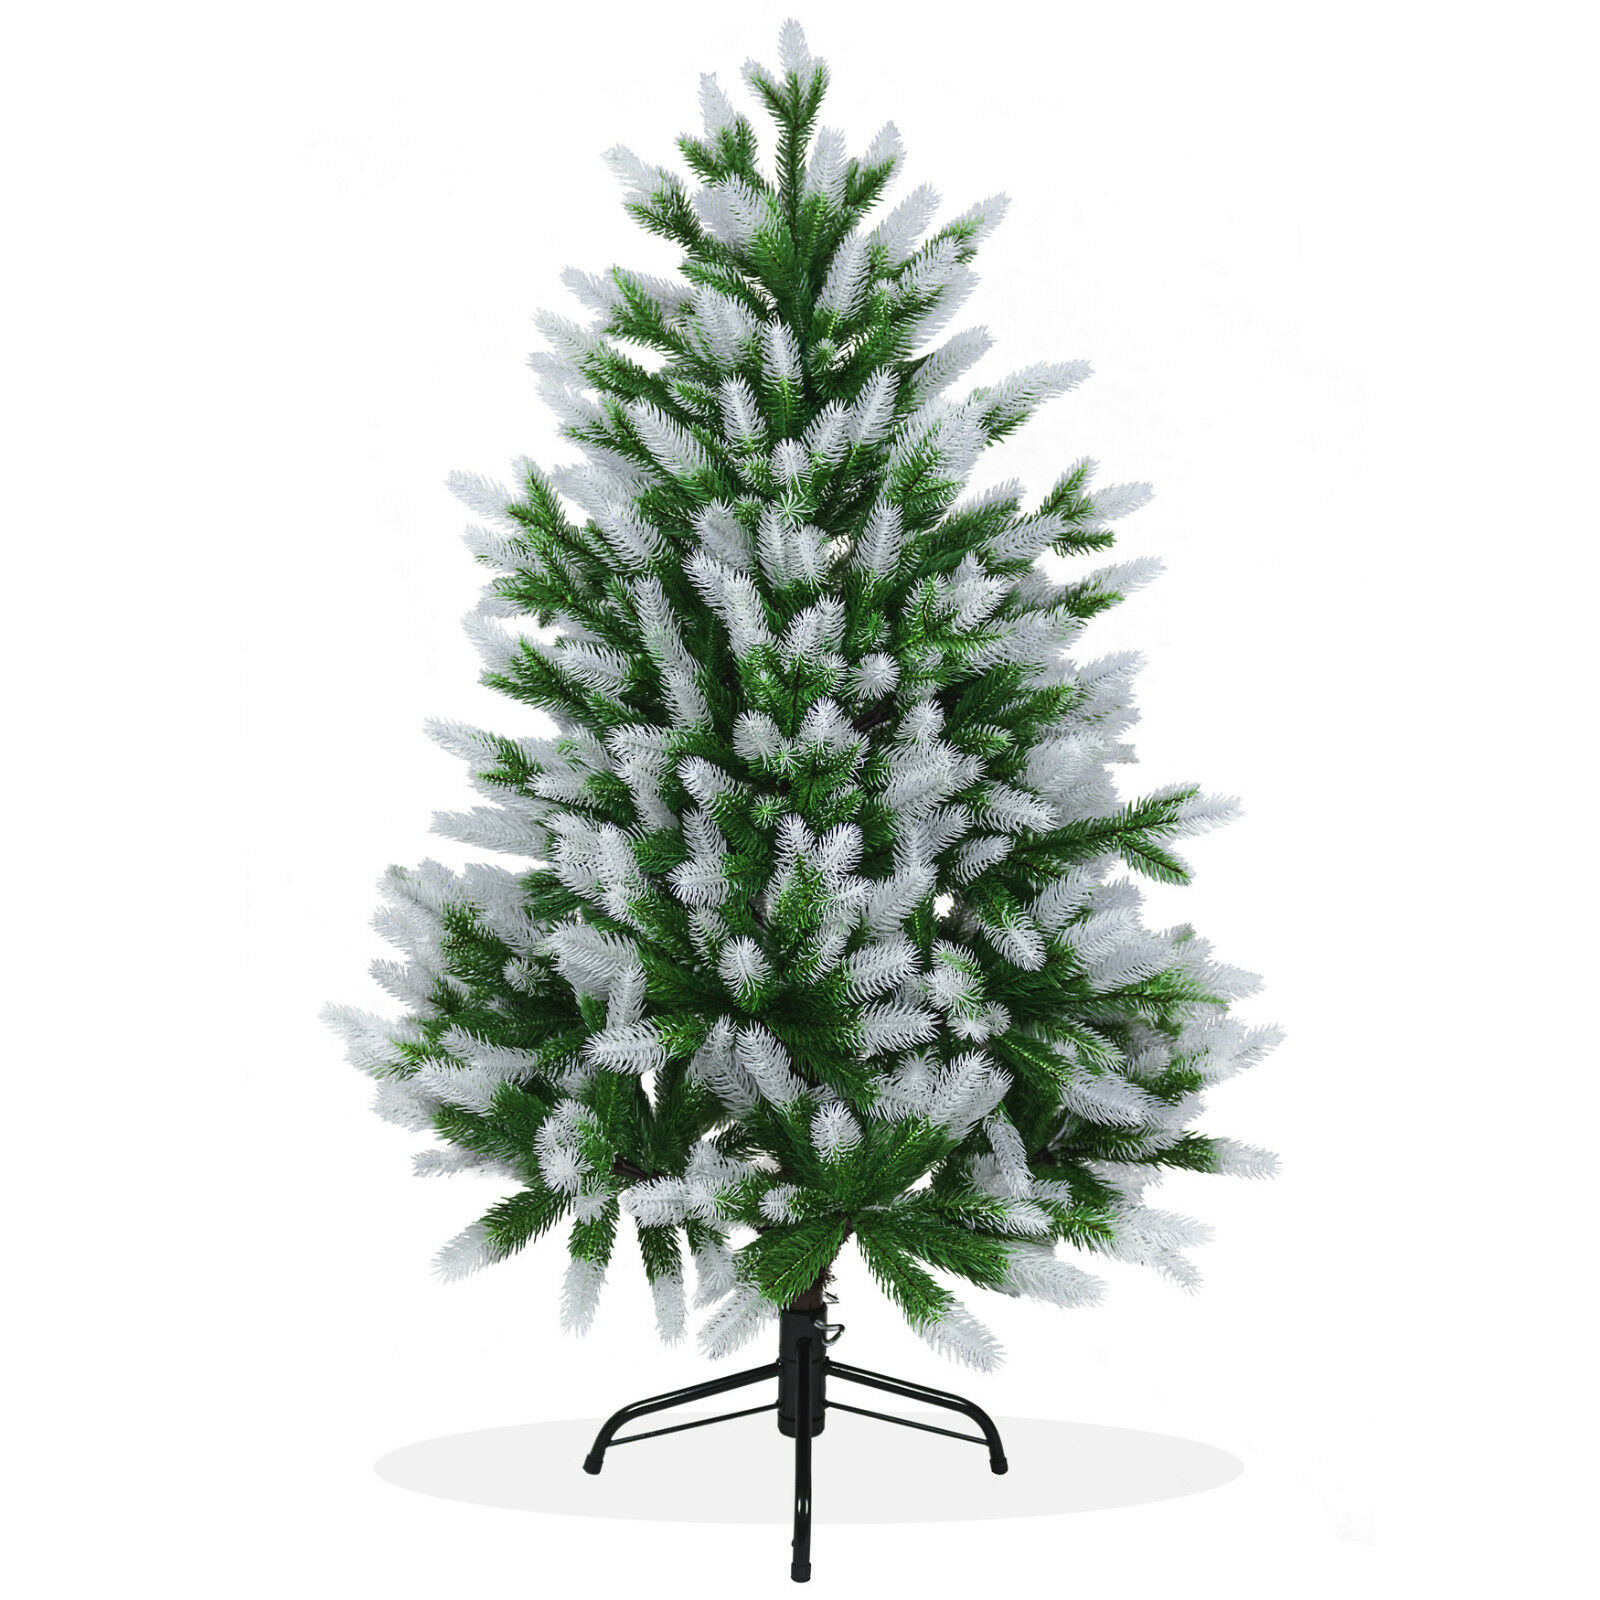 k nstlicher weihnachtsbaum 120cm nordmanntanne spritzguss christbaum schnee ps05 ebay. Black Bedroom Furniture Sets. Home Design Ideas